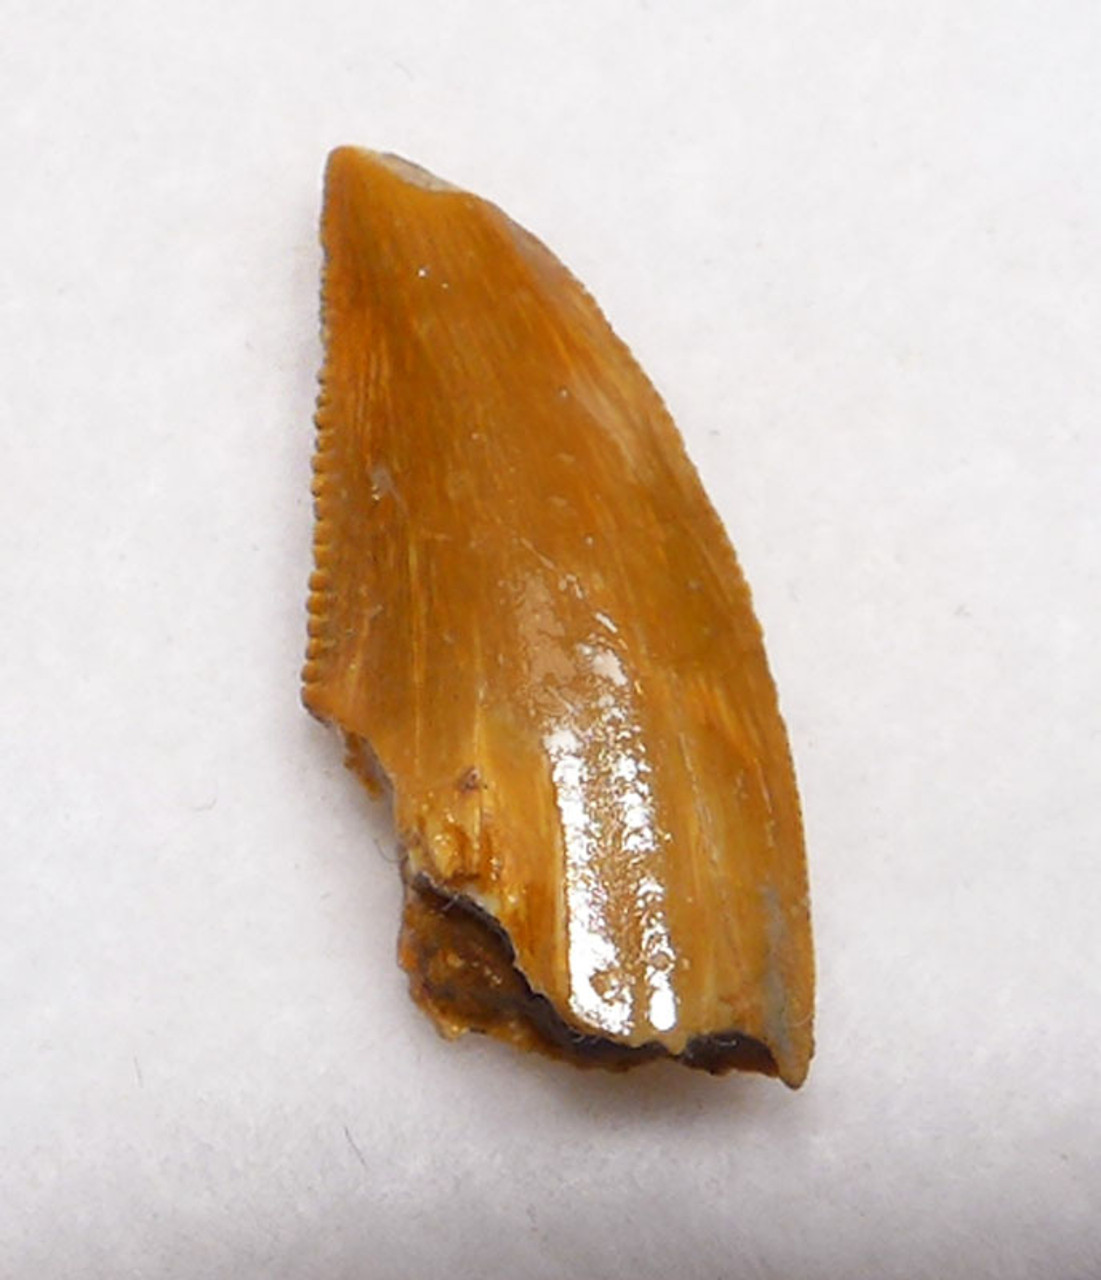 BEAUTIFUL BURNT ORANGE FOSSIL RAPTOR DINOSAUR TOOTH FROM A LARGE DROMAEOSAUR  *DT6-325